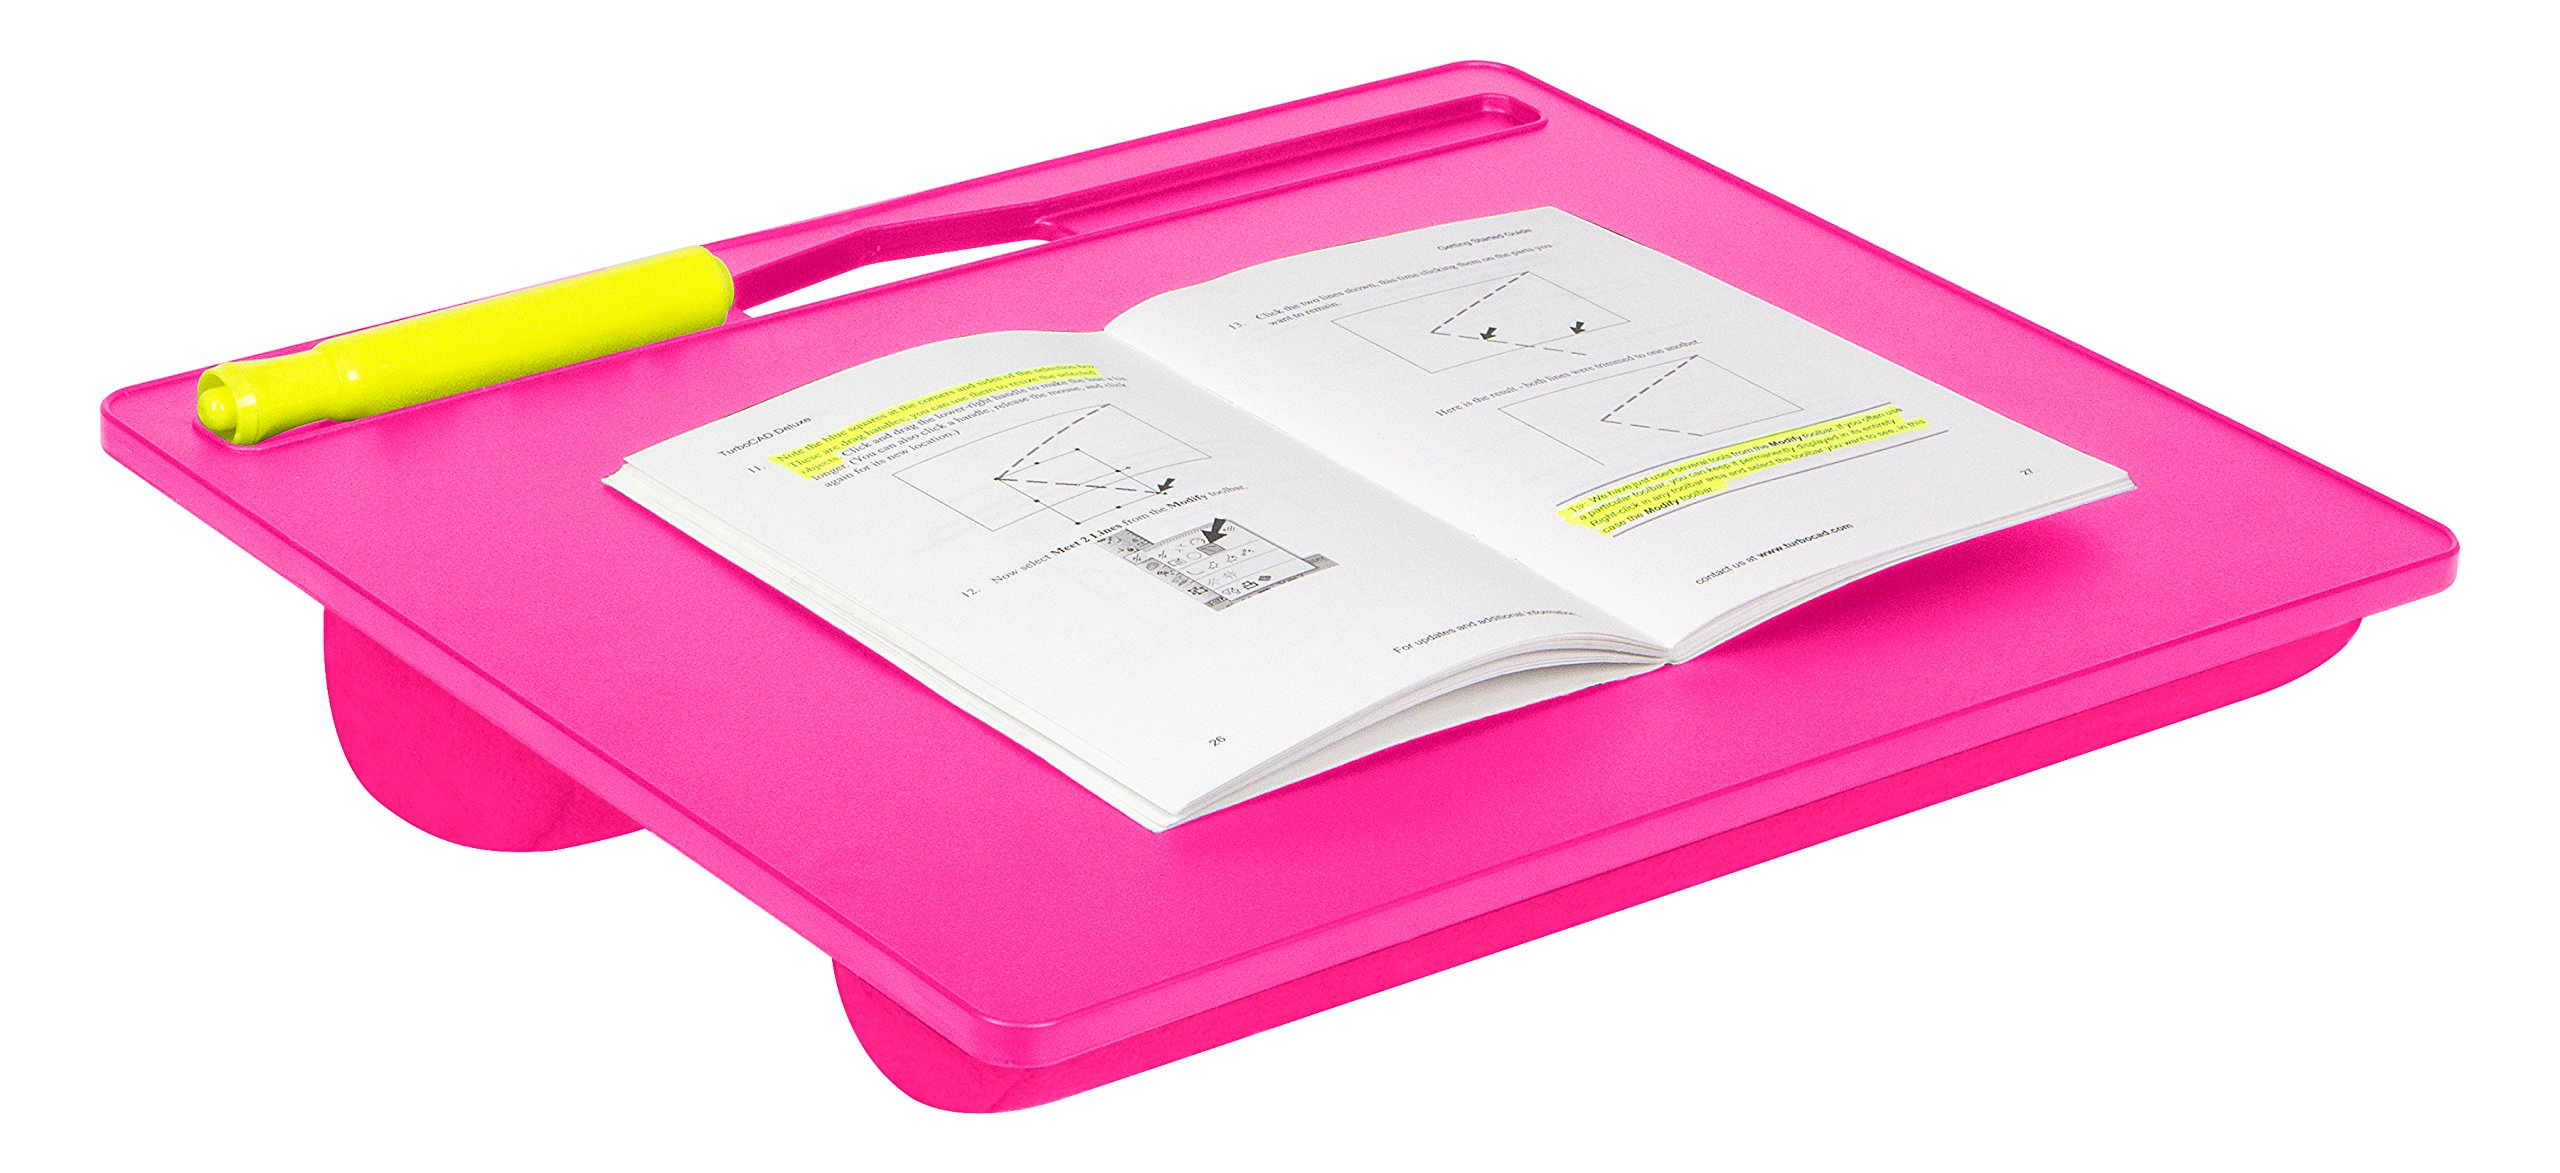 LapGear Student LapDesk 45017 Pink